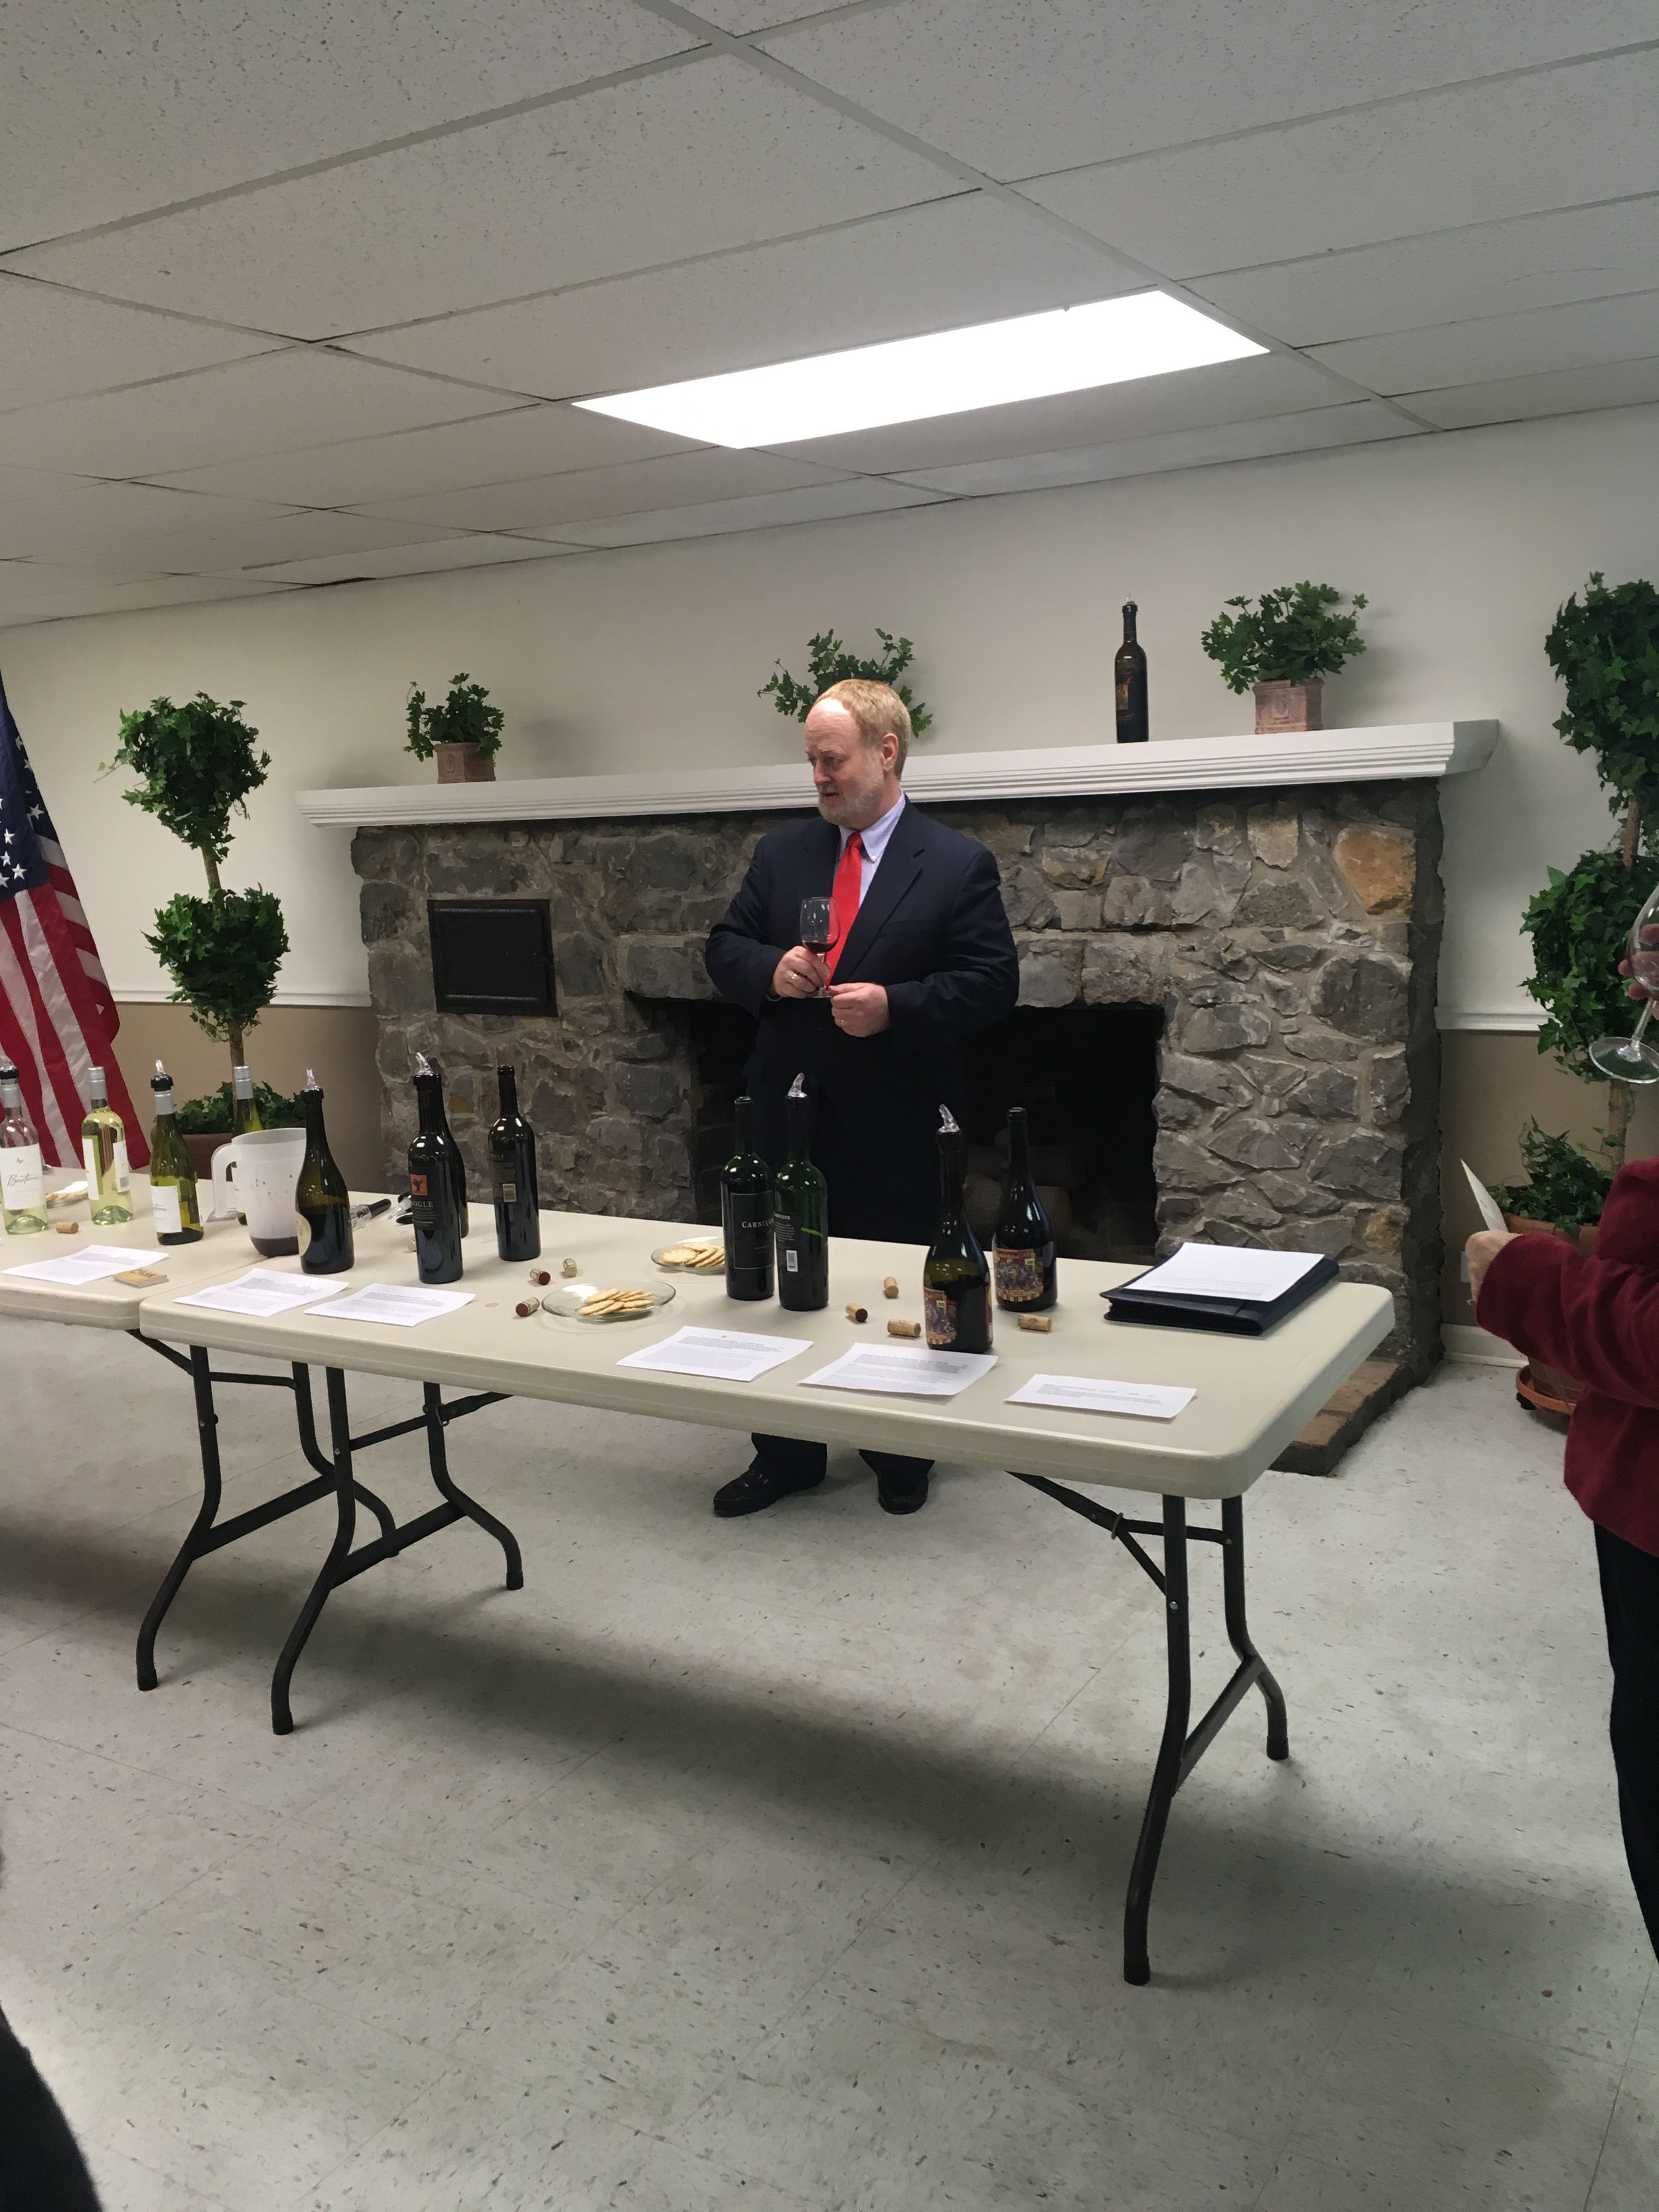 Randy Black leads a seminar on rating wines by scoring clarity, bouquet, taste, finish and overall appeal. From moscato to Zinfandel to Cabernet to Pinot noir, the participants spent time rating 9 wines